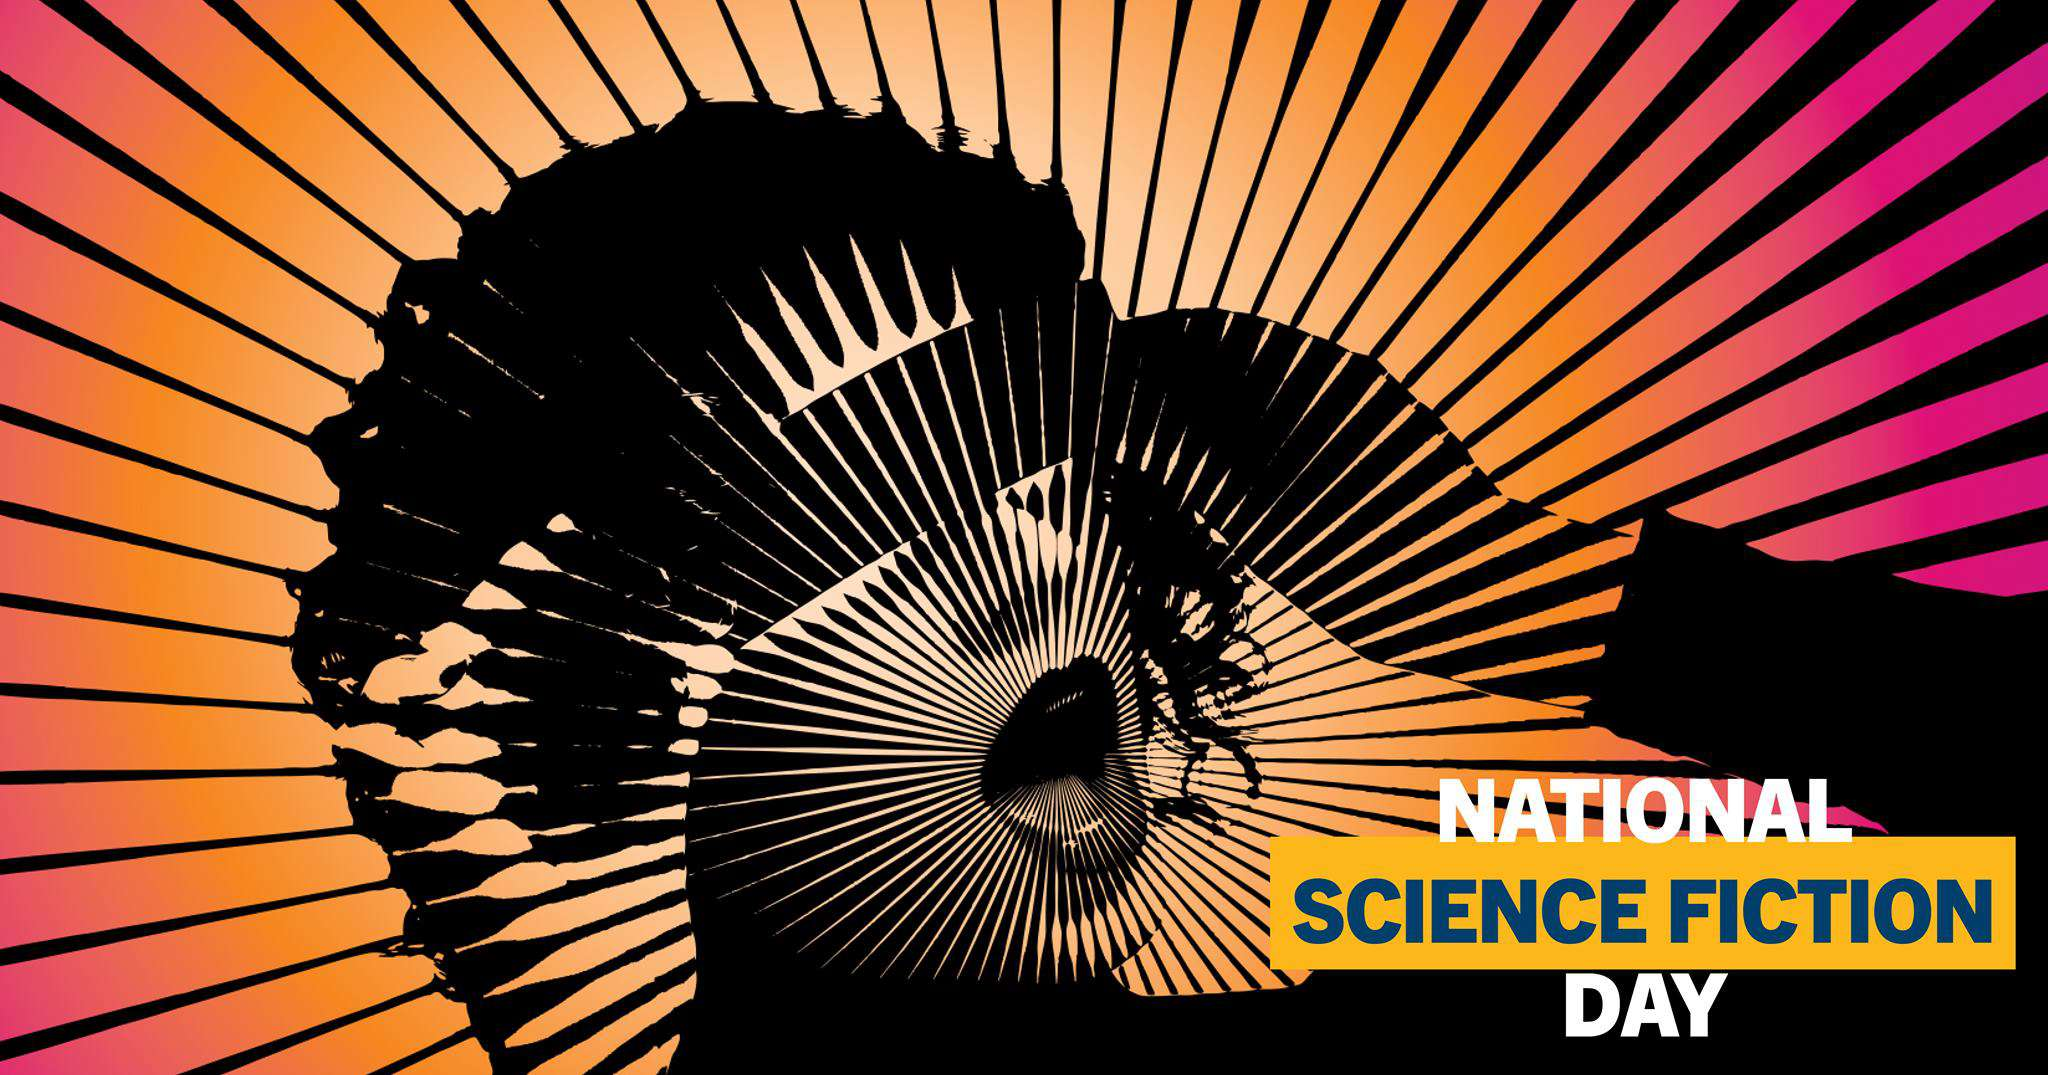 National Science Fiction Day Wishes Awesome Images, Pictures, Photos, Wallpapers